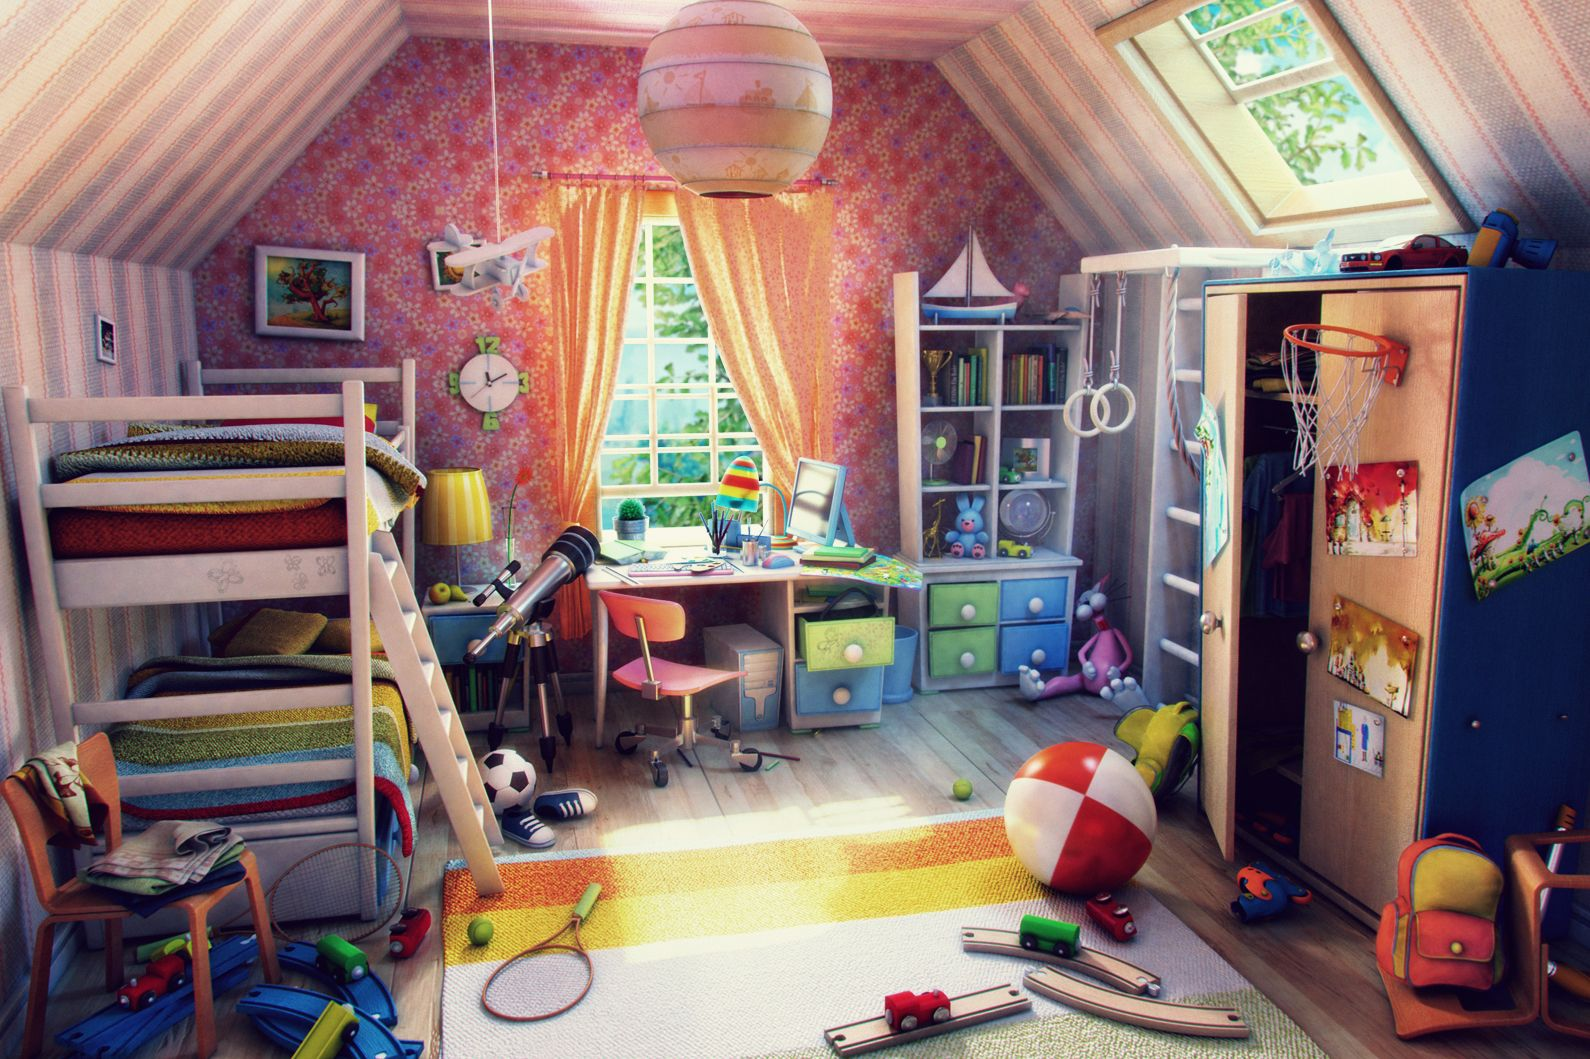 children's roomalekscg.deviantart on @deviantart | art